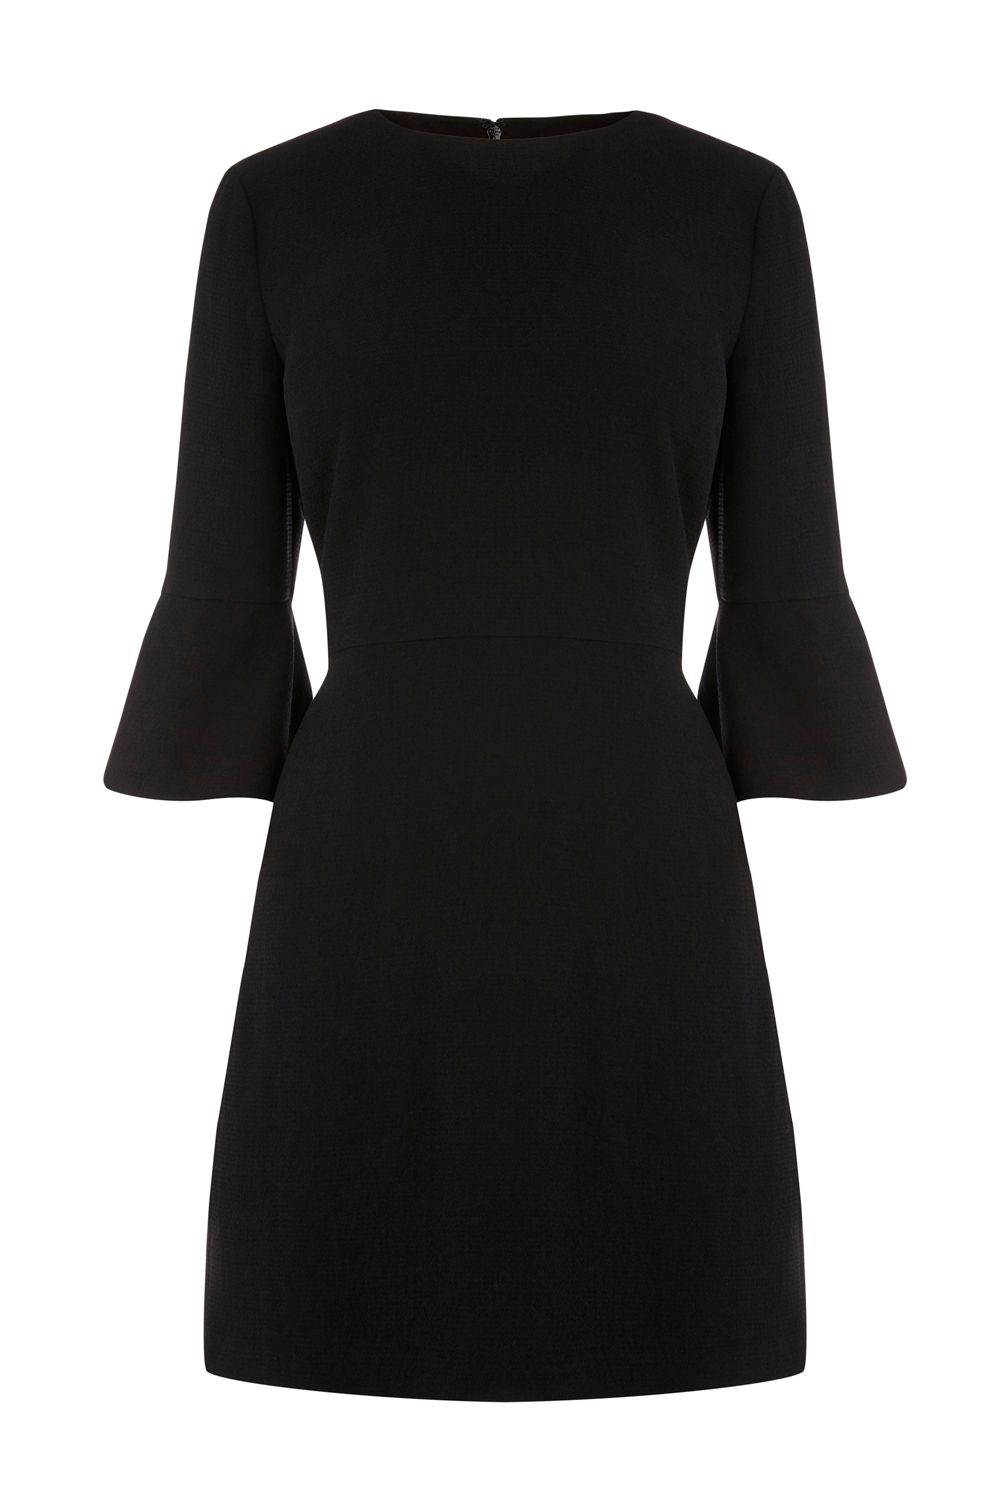 Warehouse Flute Sleeve Dress, Black